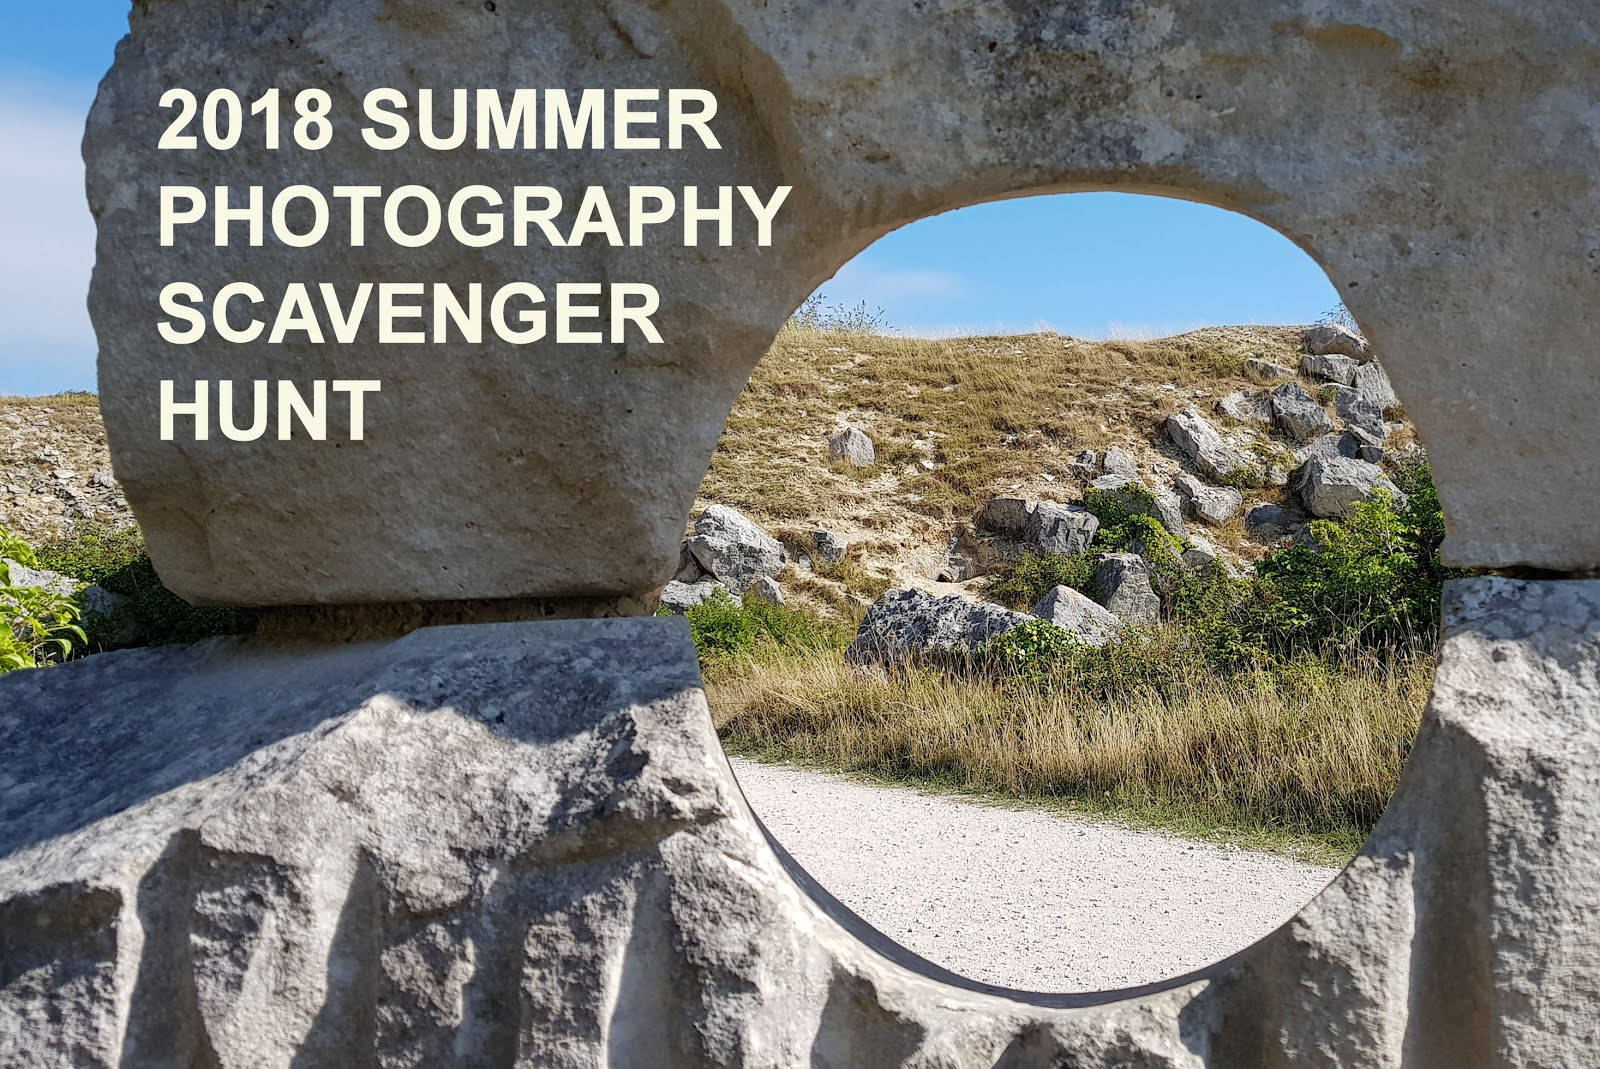 2018 SUMMER PHOTOGRAPHY SCAVENGER HUNT